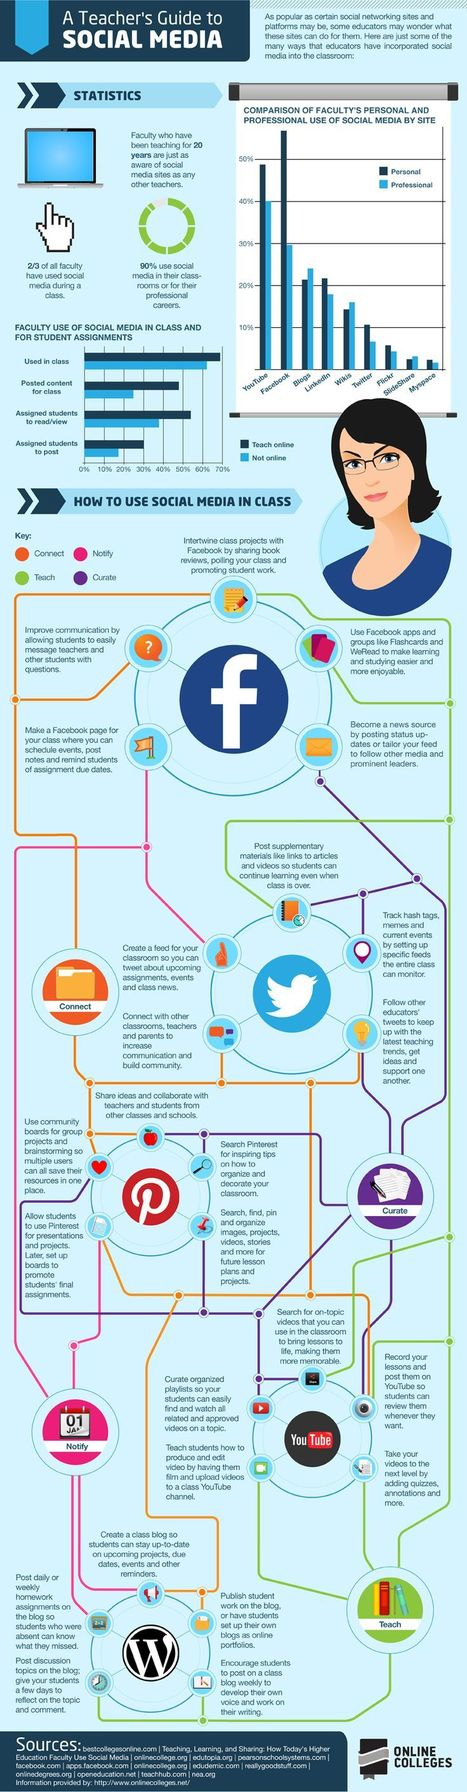 The essential teacher's guide to social media - Daily Genius | Let us learn together... | Scoop.it